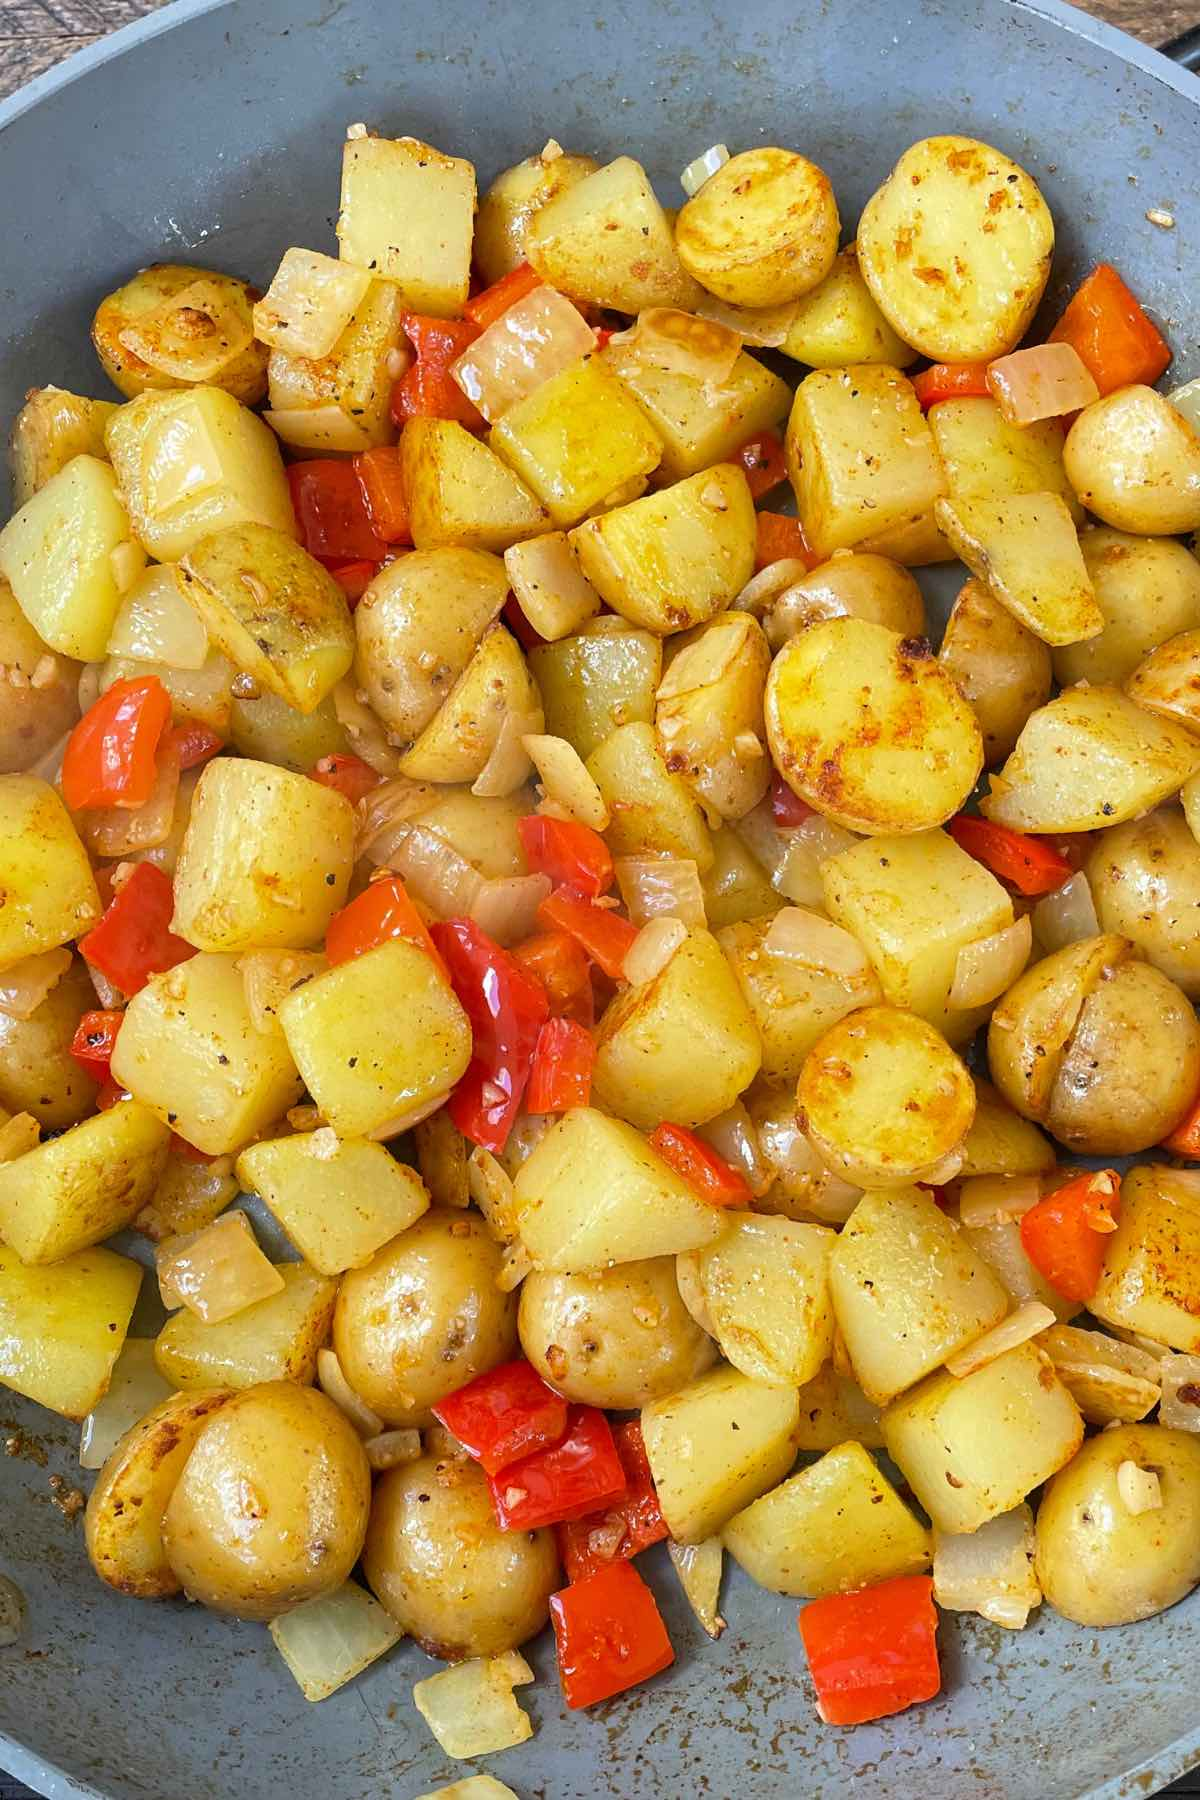 Sauteed southern vegetables in a skillet